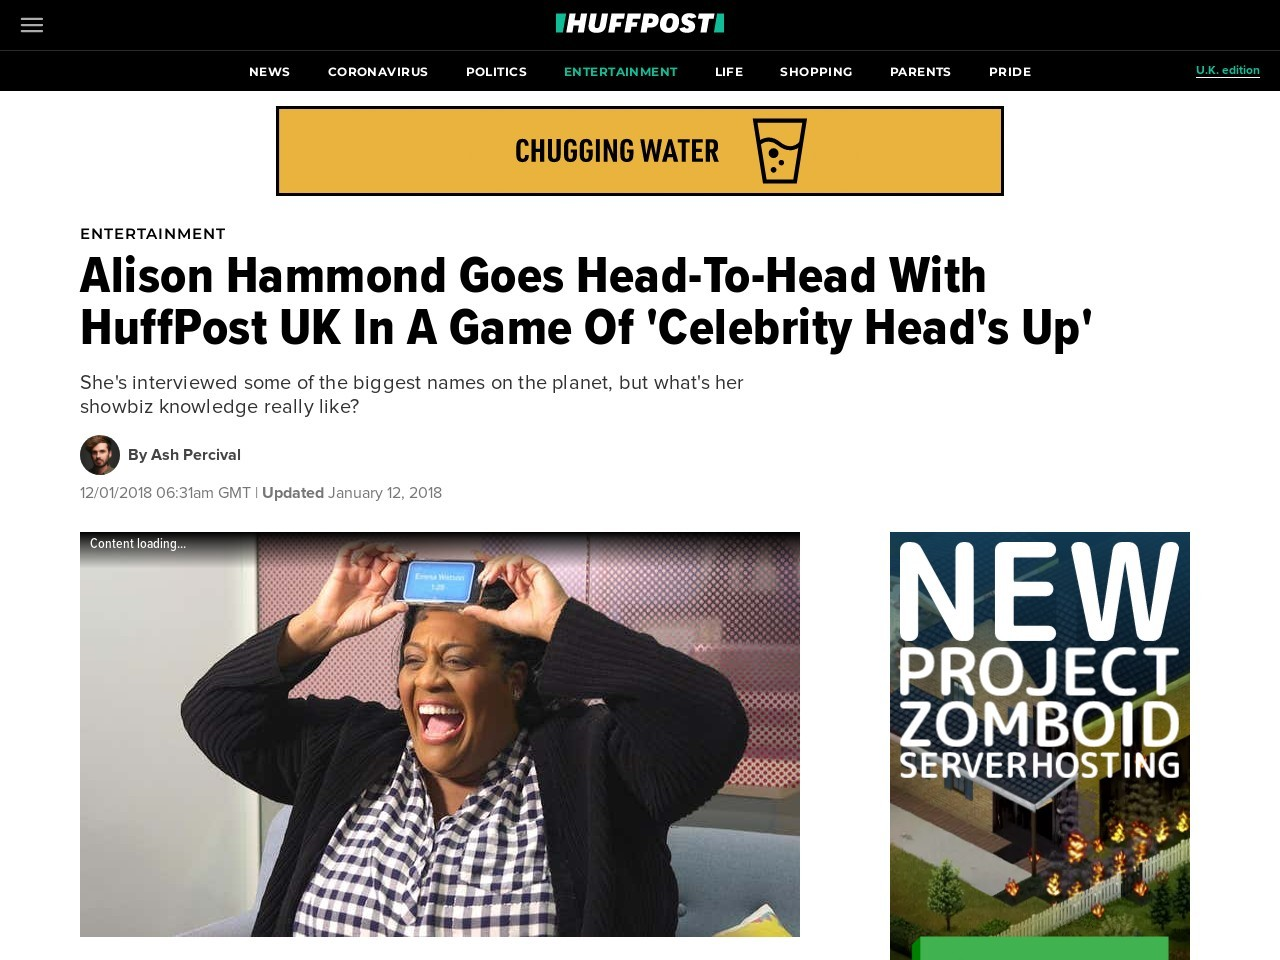 Alison Hammond Goes Head-To-Head With HuffPost UK In A Game Of 'Celebrity Head's Up'